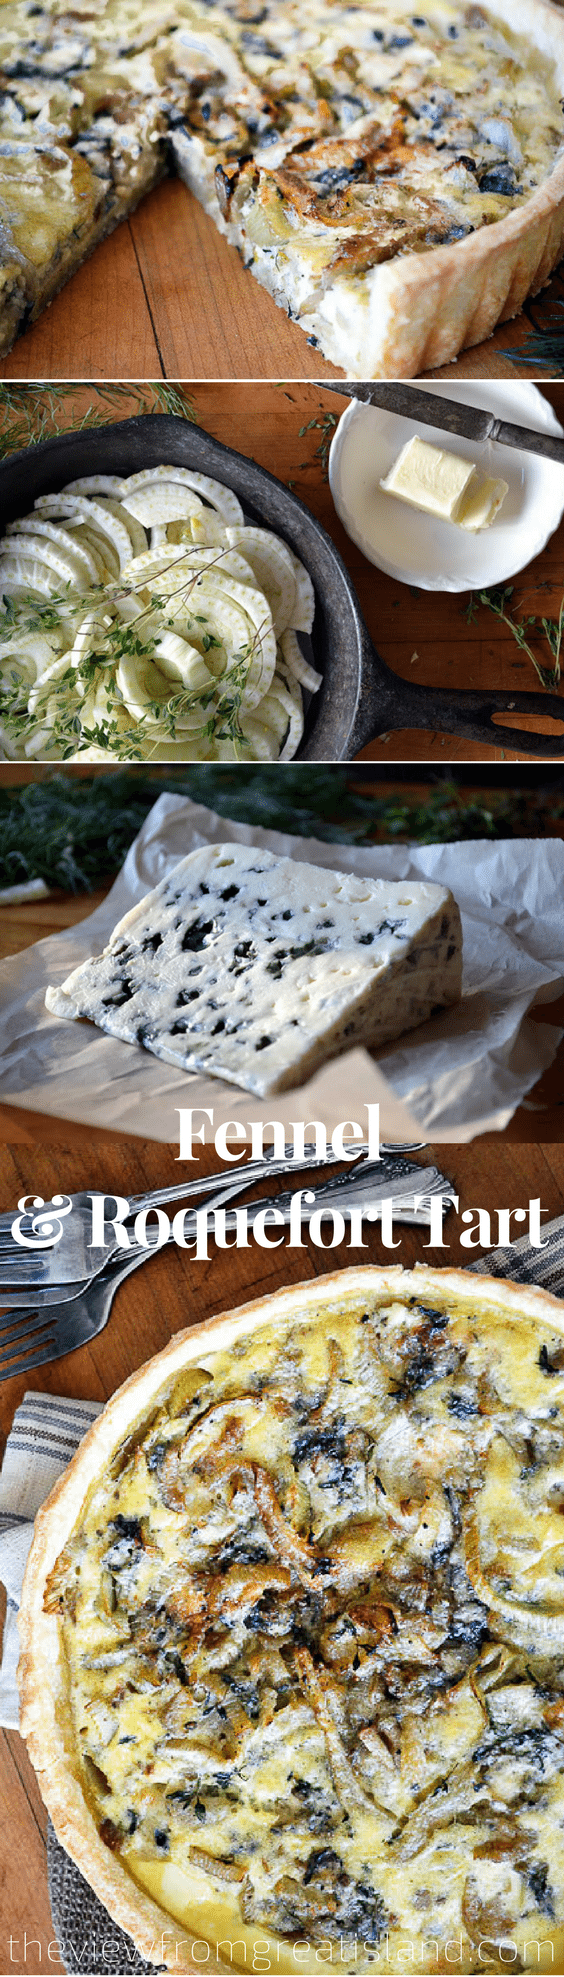 Fennel and Roquefort Tart is an elegant appetizer or light meal richly flavored with creamy Roquefort cheese and fennel, from the doyenne of French cooking, Anne Willan. #quiche #lunch #brunch #bluecheese #onionquiche #savorytart #pie #piecrust #frenchtart #eggs #appetizer #quicherecipe